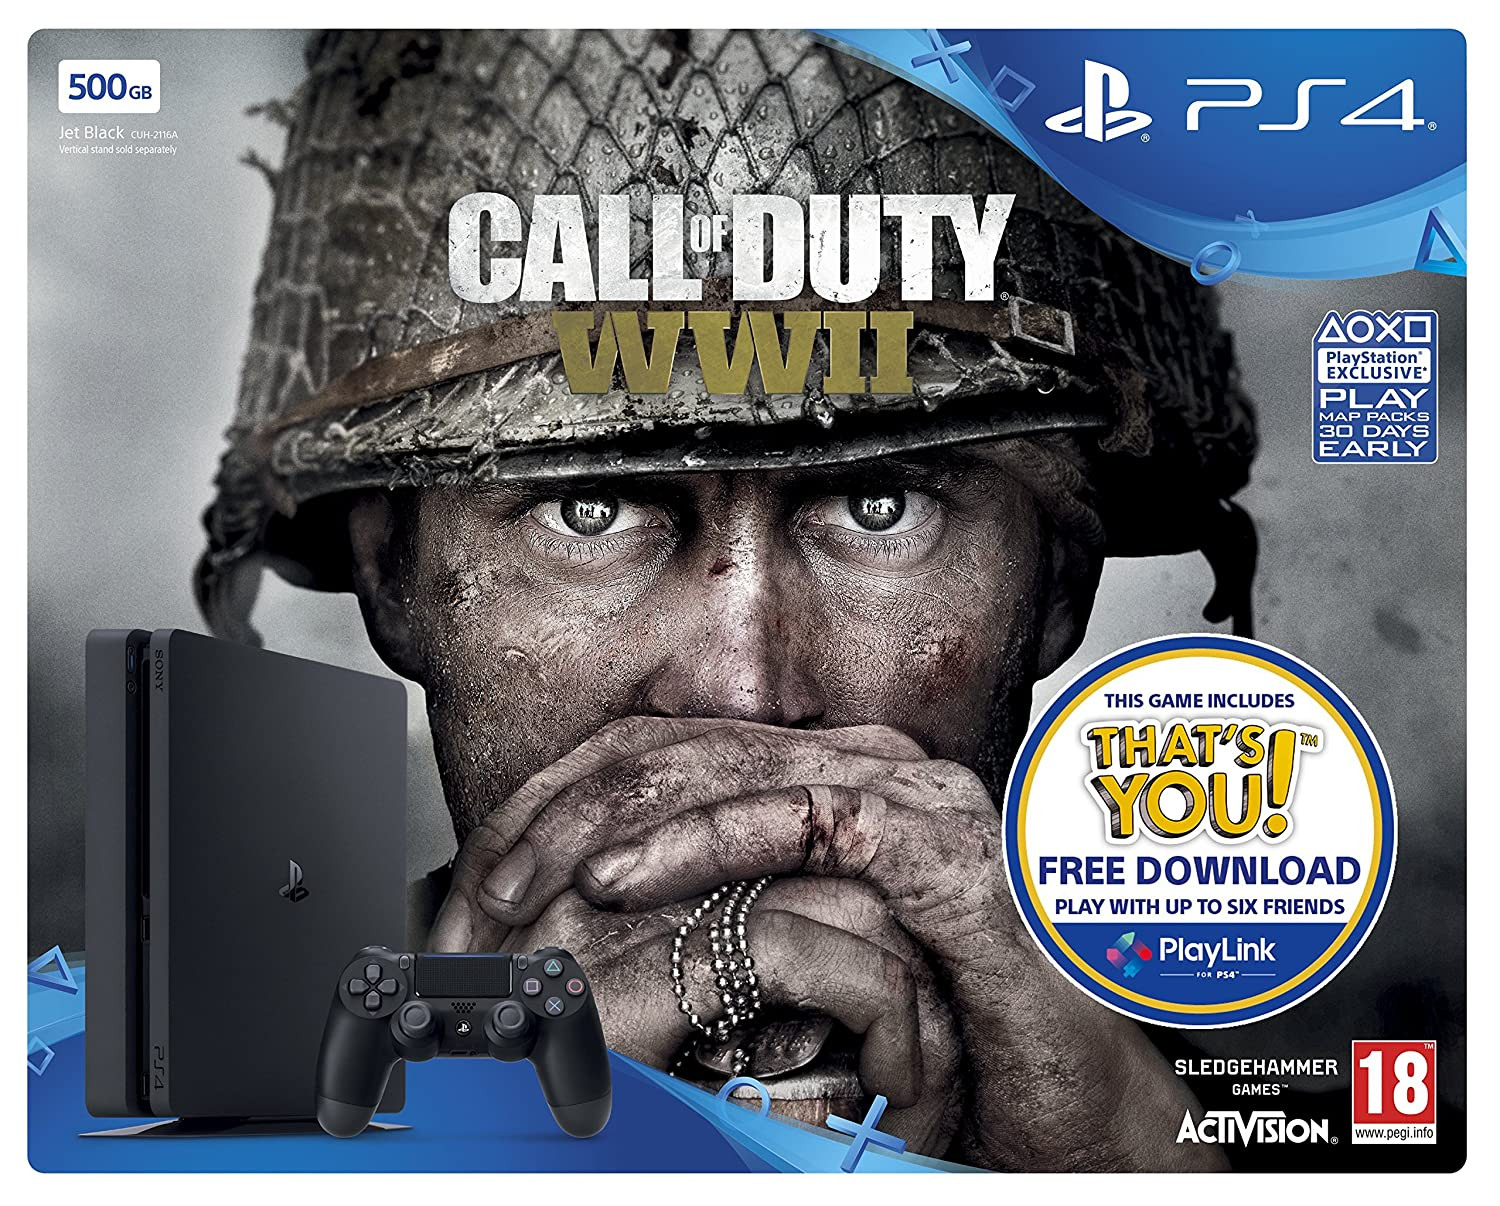 ps4 games download while playing